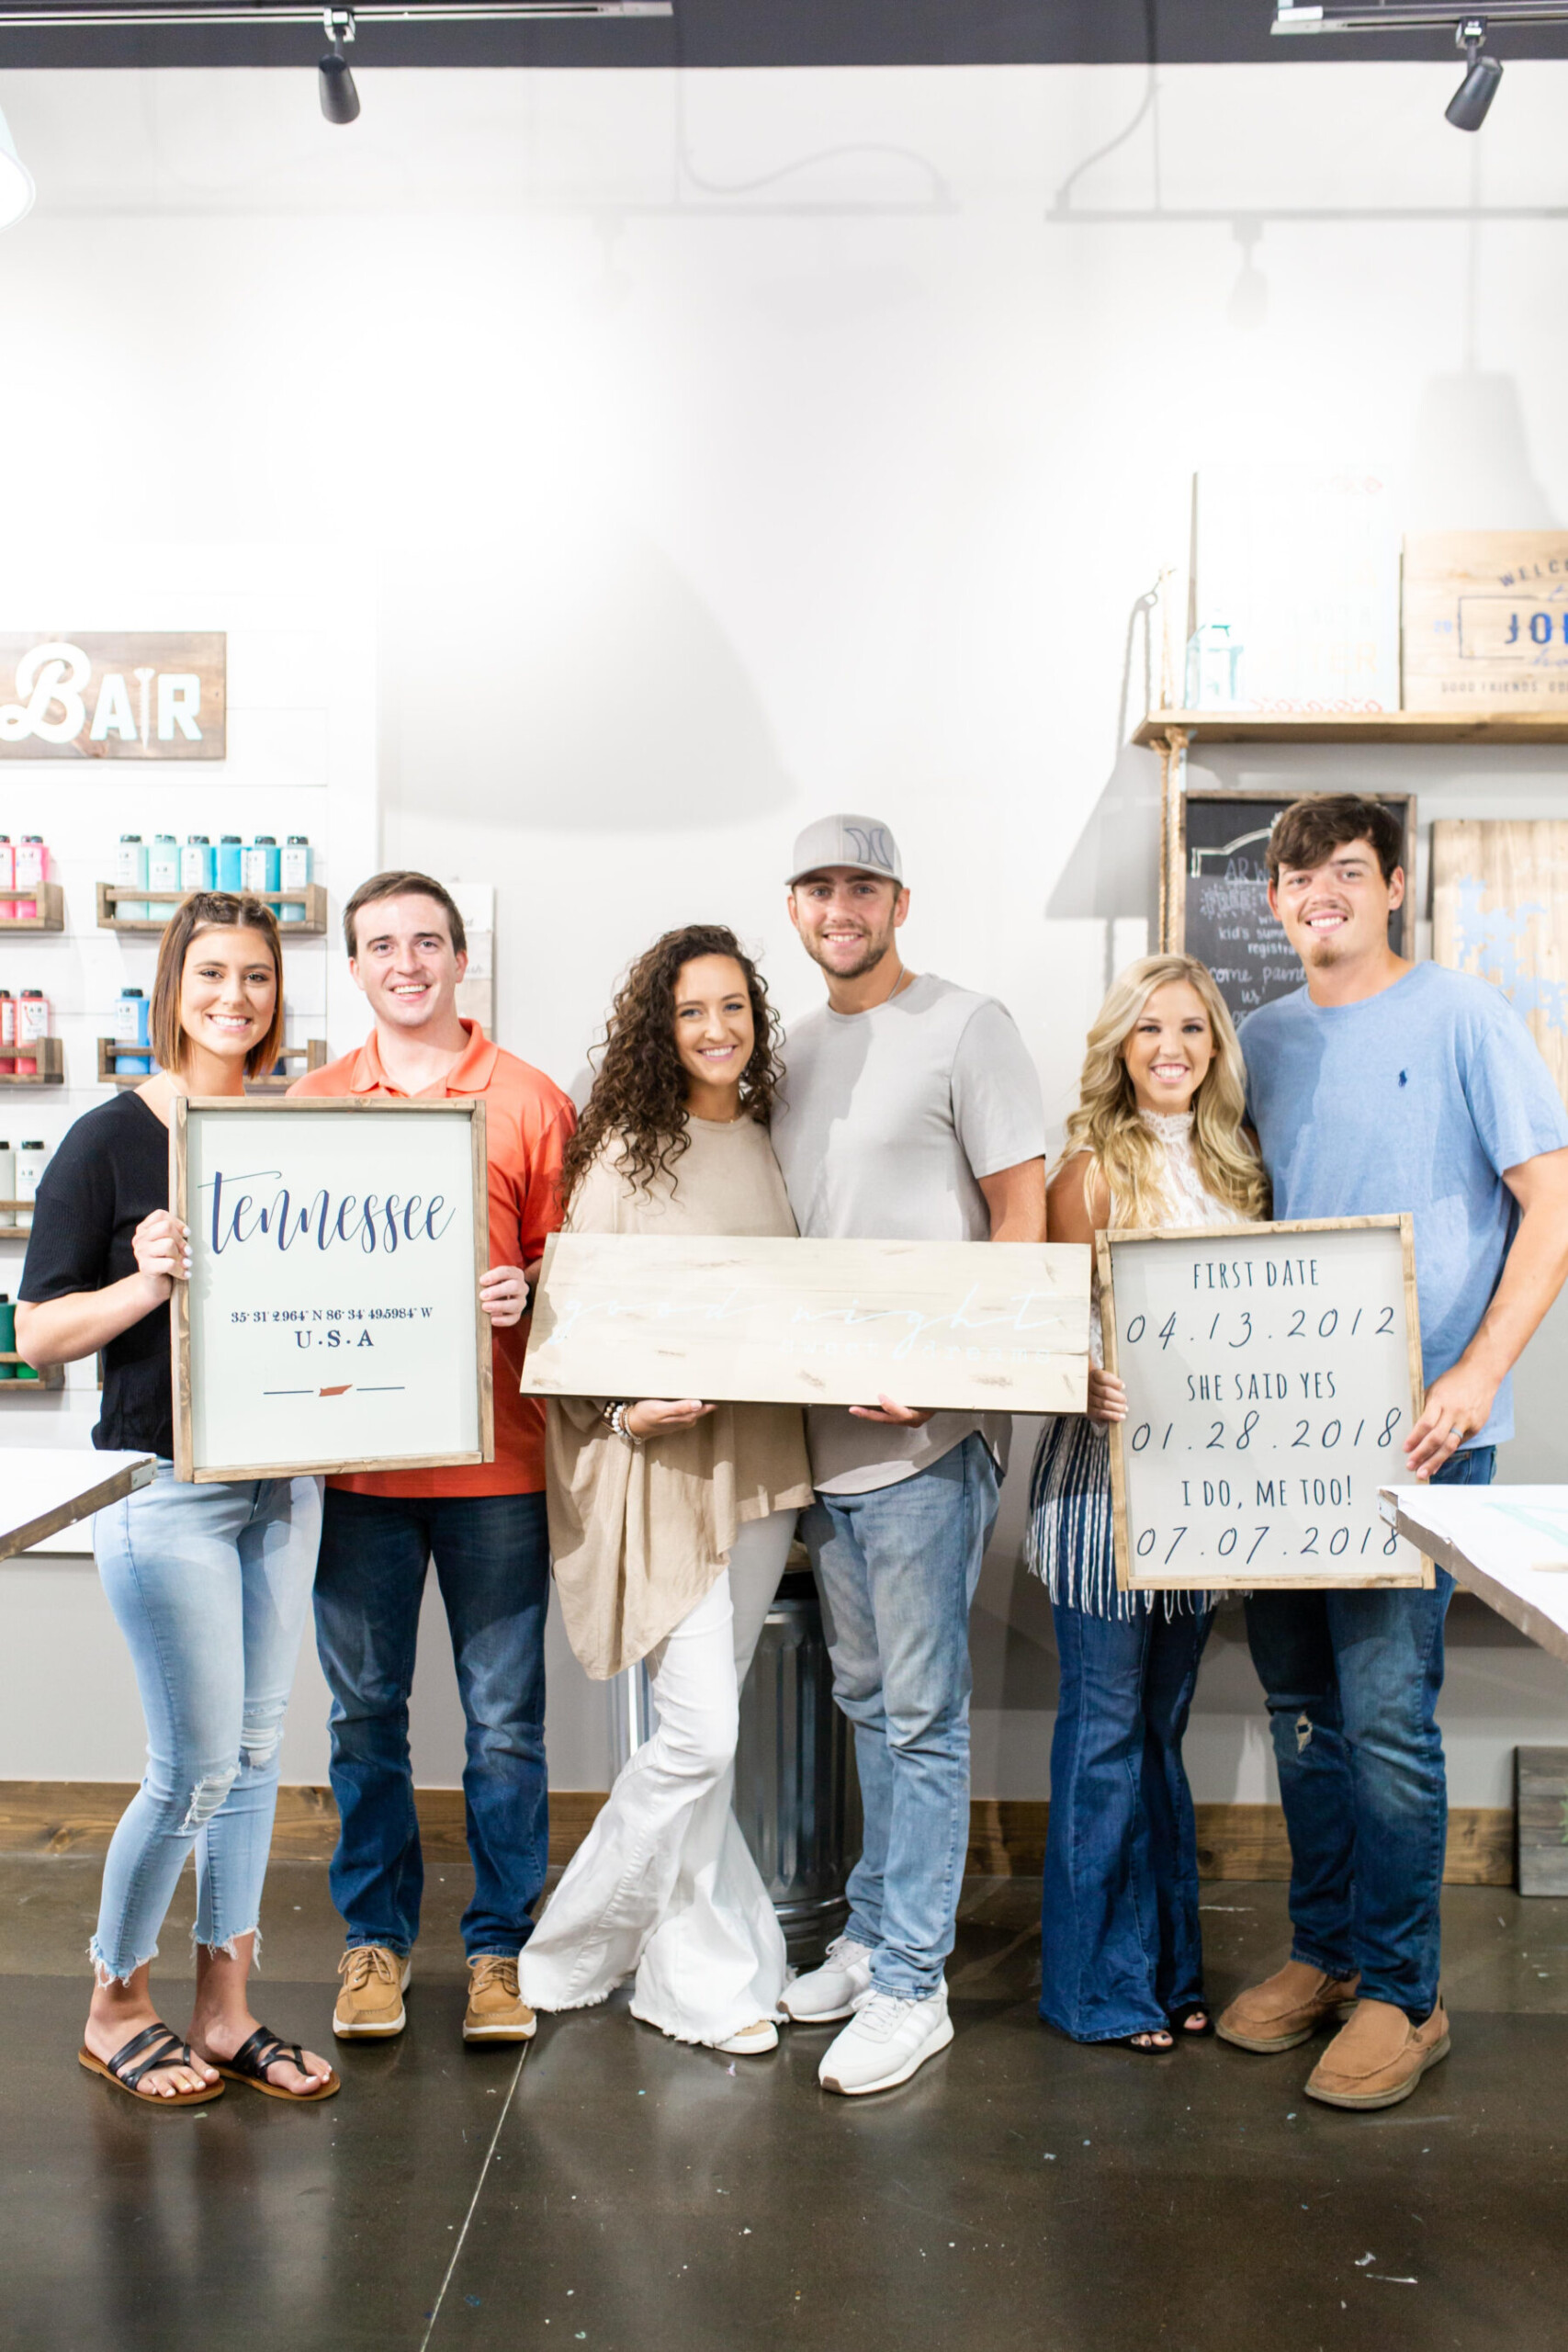 How to Host an Interactive Bridal Shower from AR Workshop Mt. Juliet